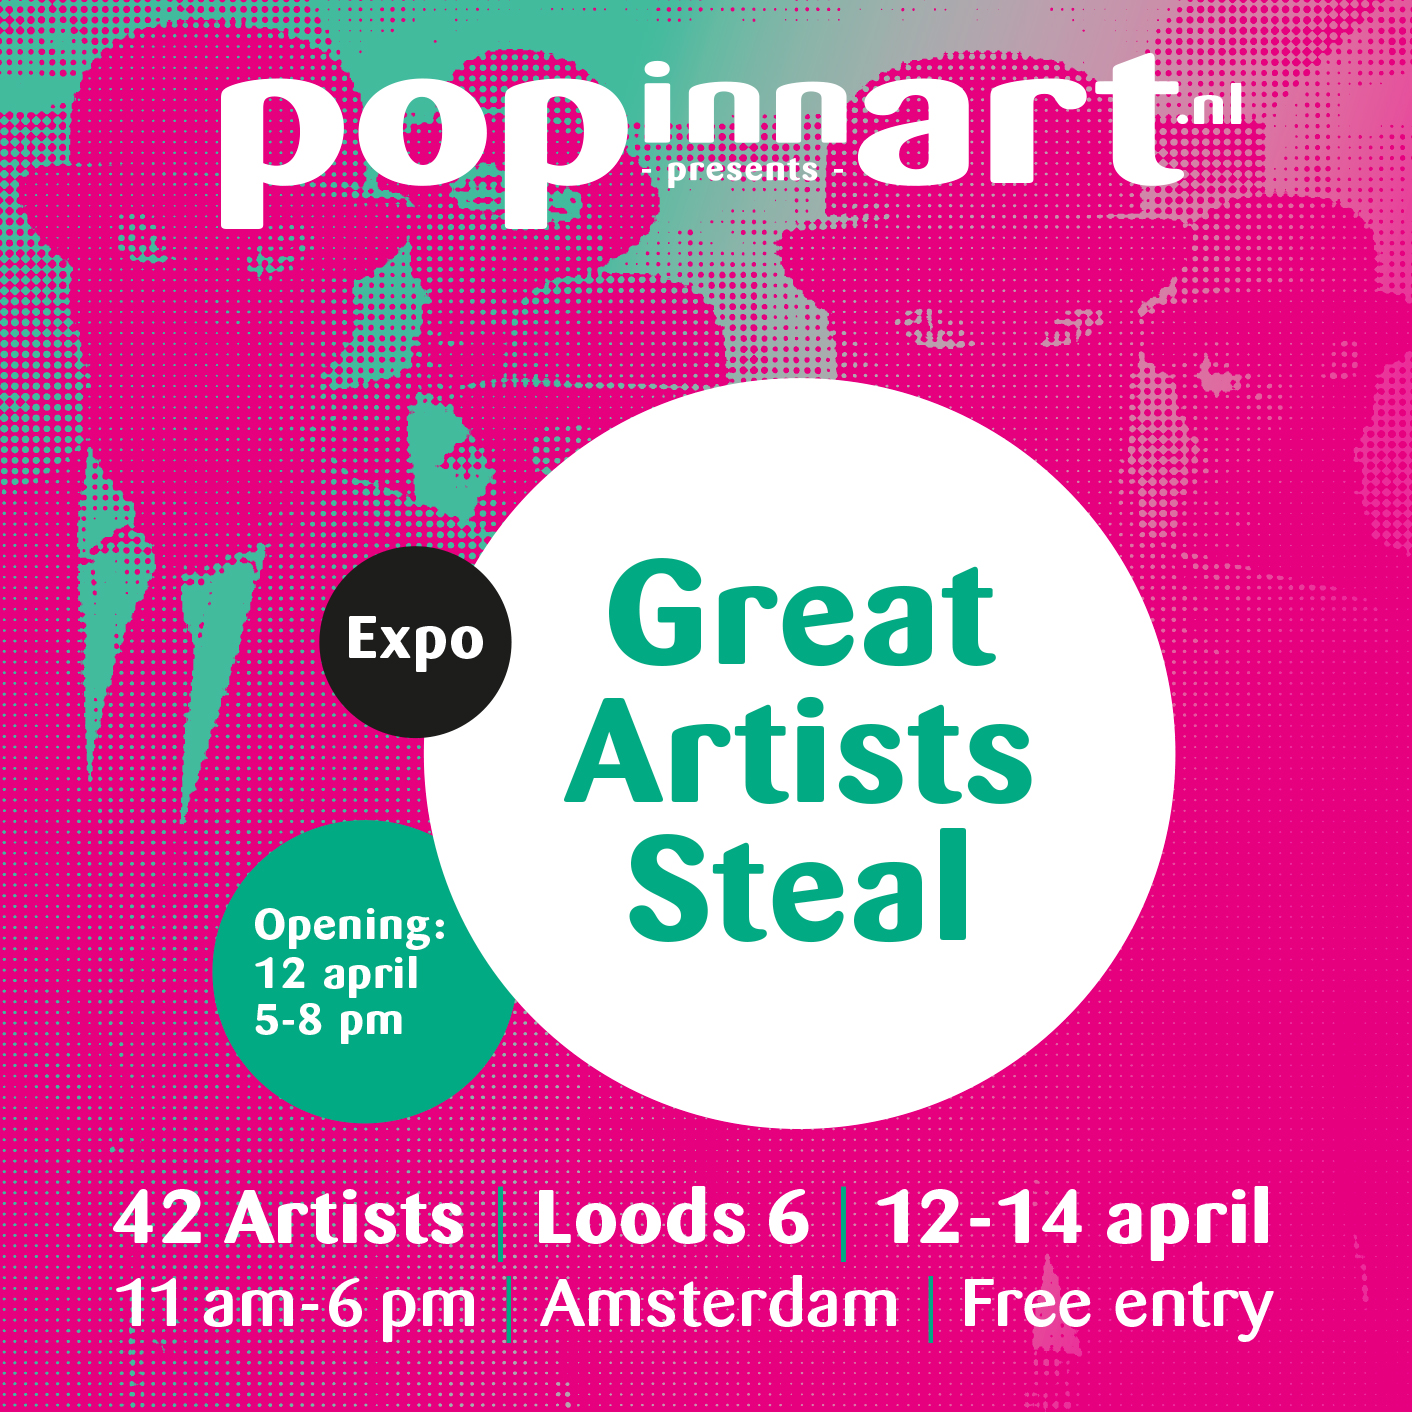 Popinnart_GreatArtistsSteal_12-14april2019_Loods6